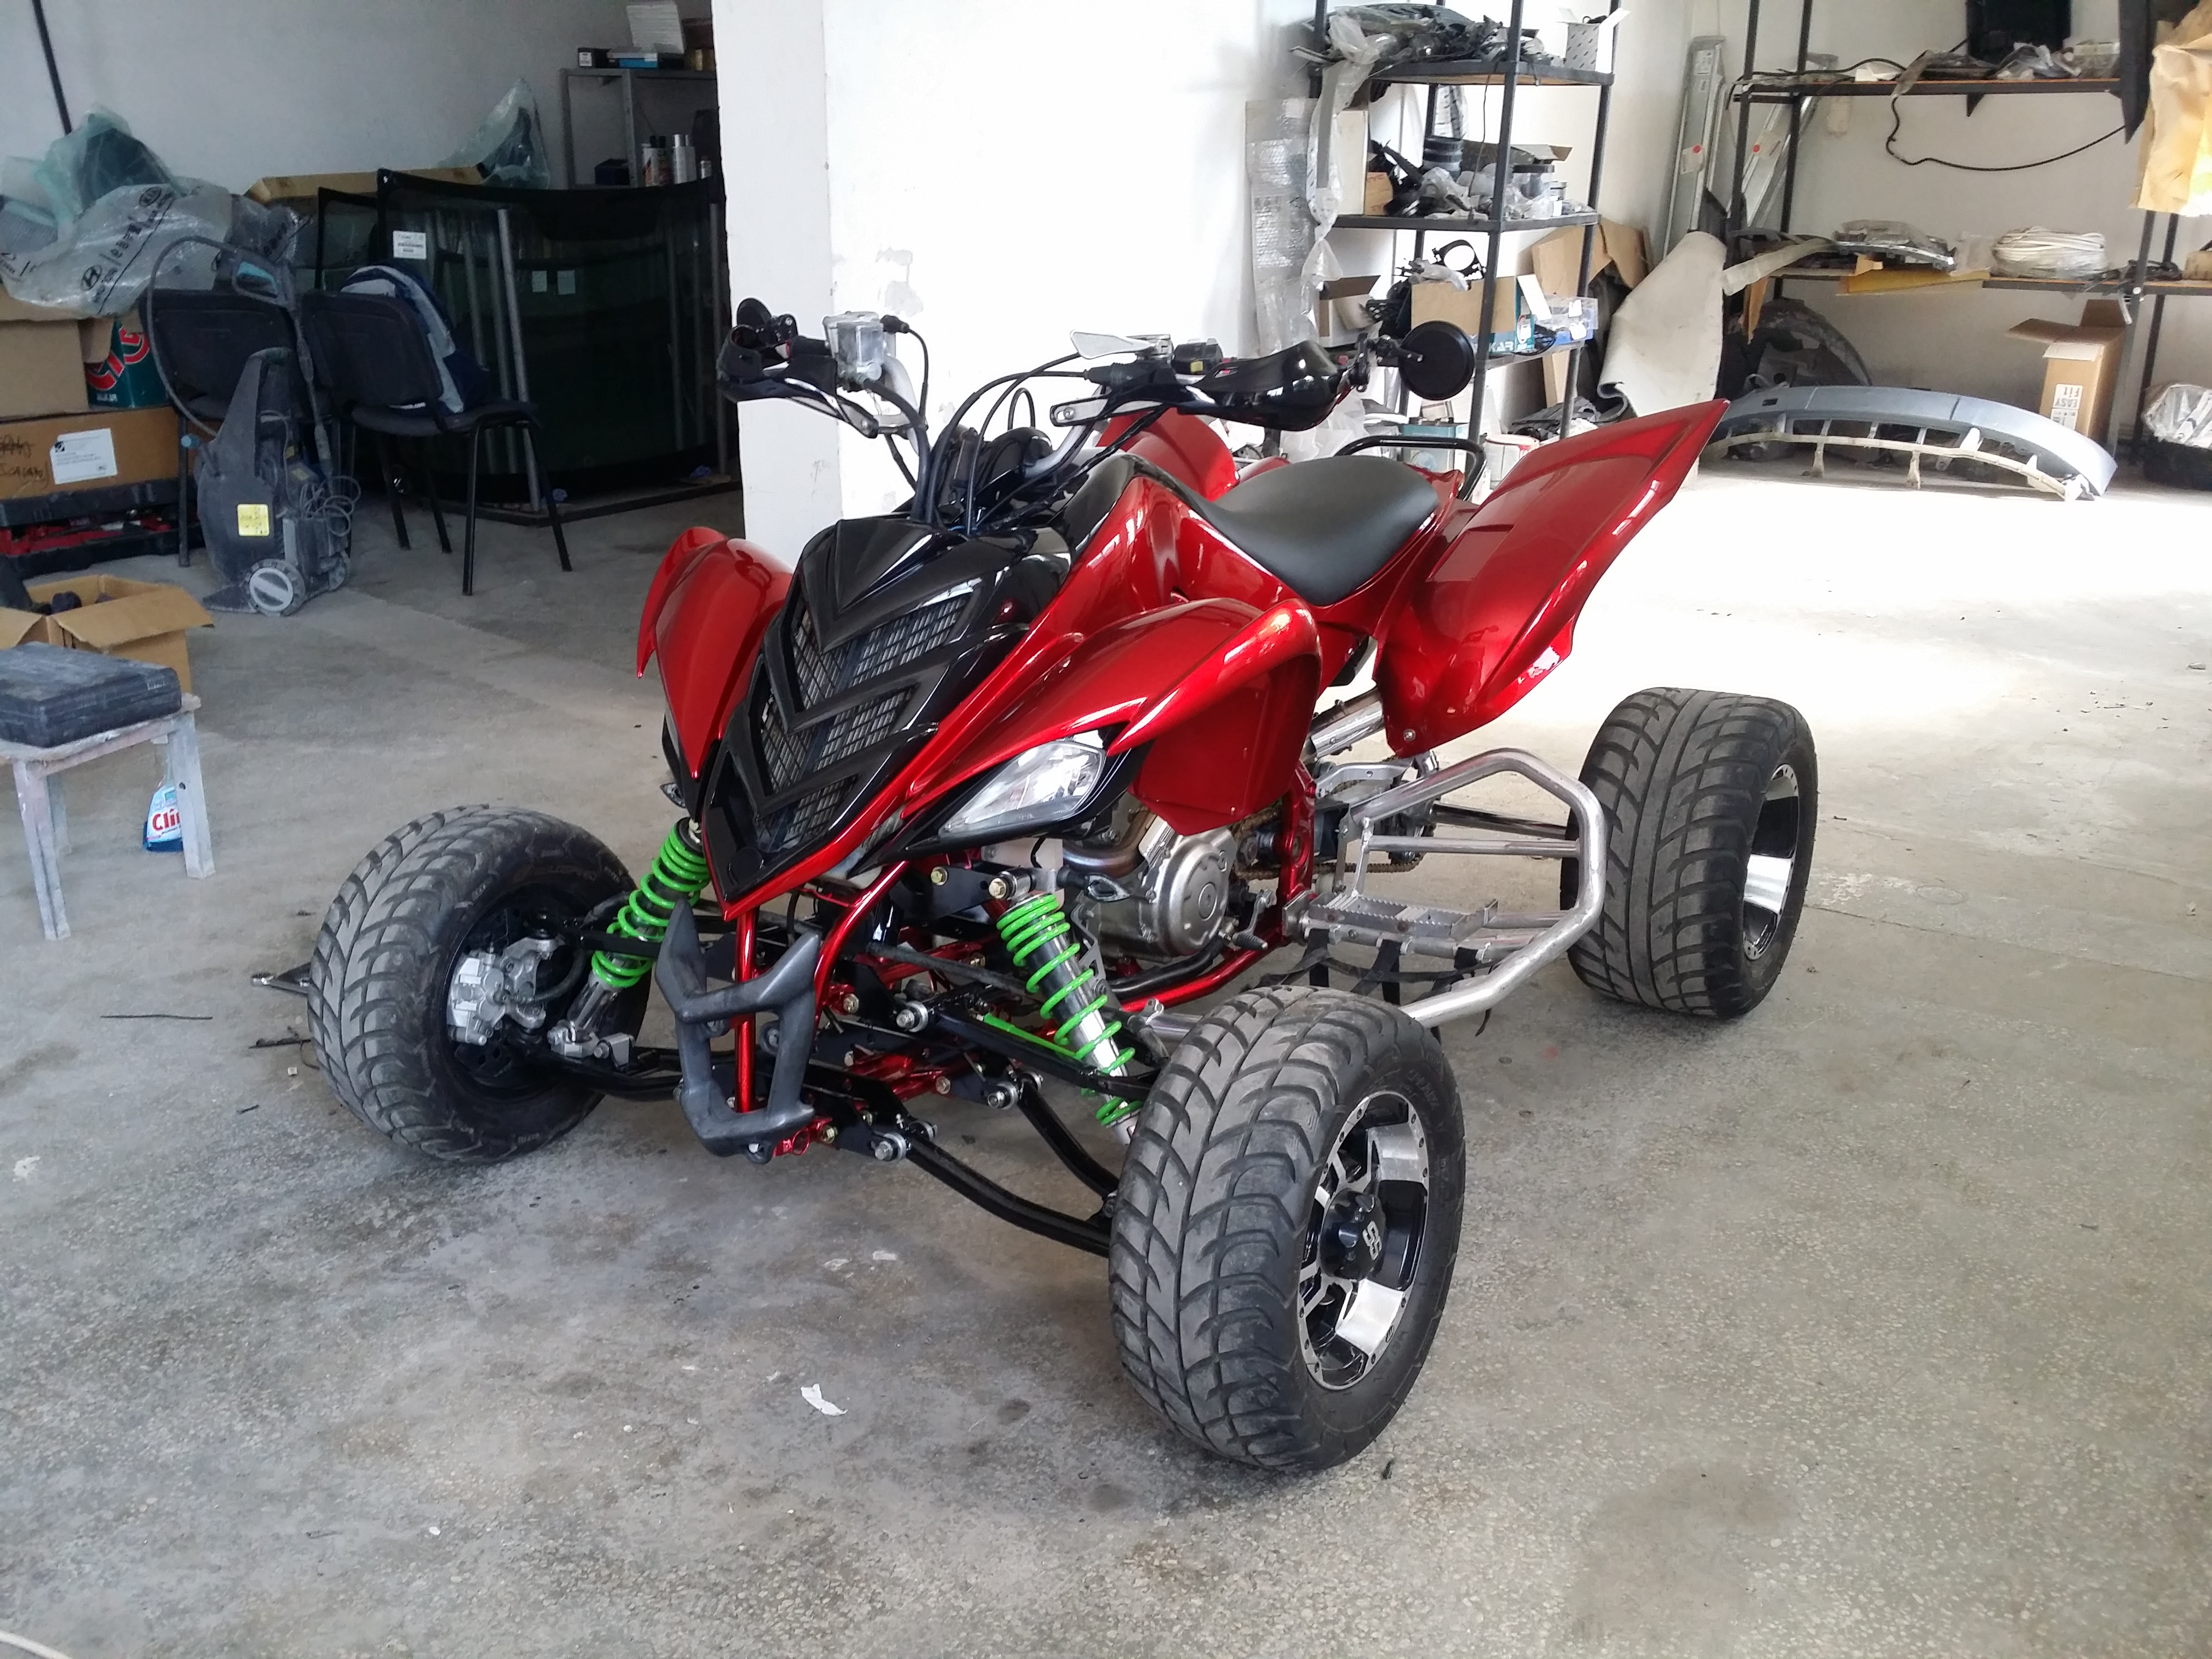 Lowered Raptor 700 CHAIN WHIP Problem, PLEASE HELP! :D:D